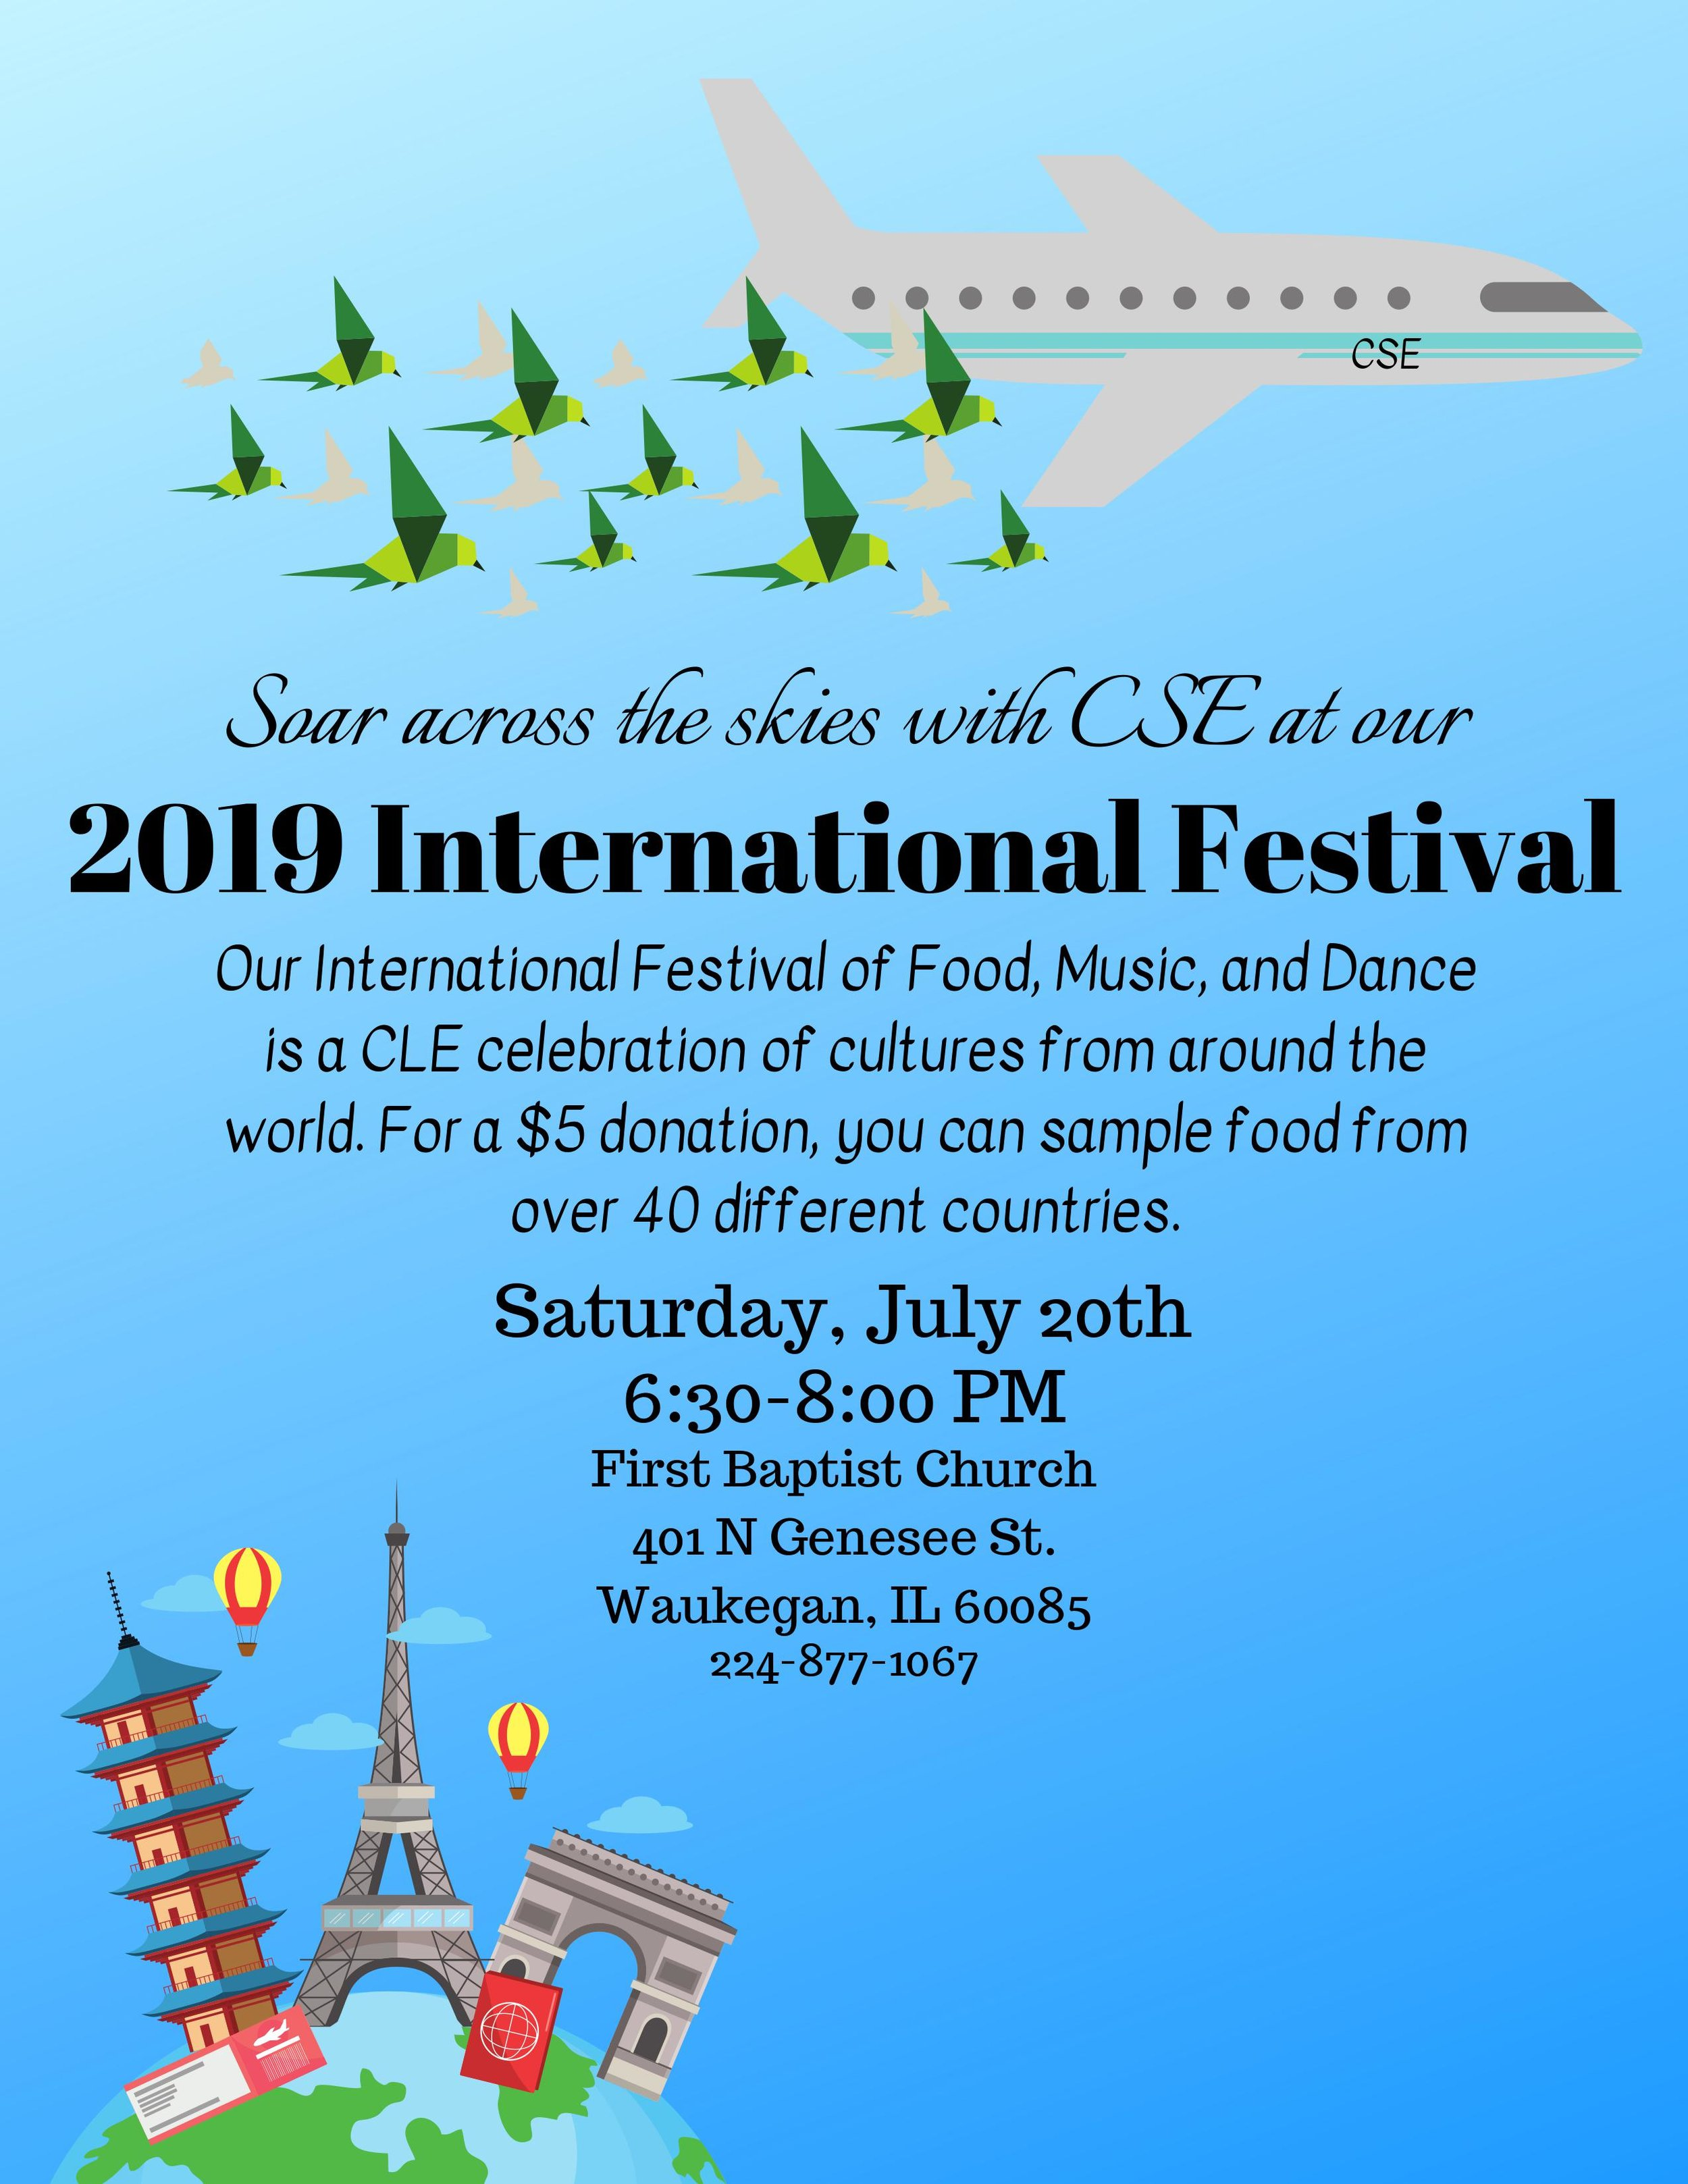 2019 International Festival Flyer.jpg